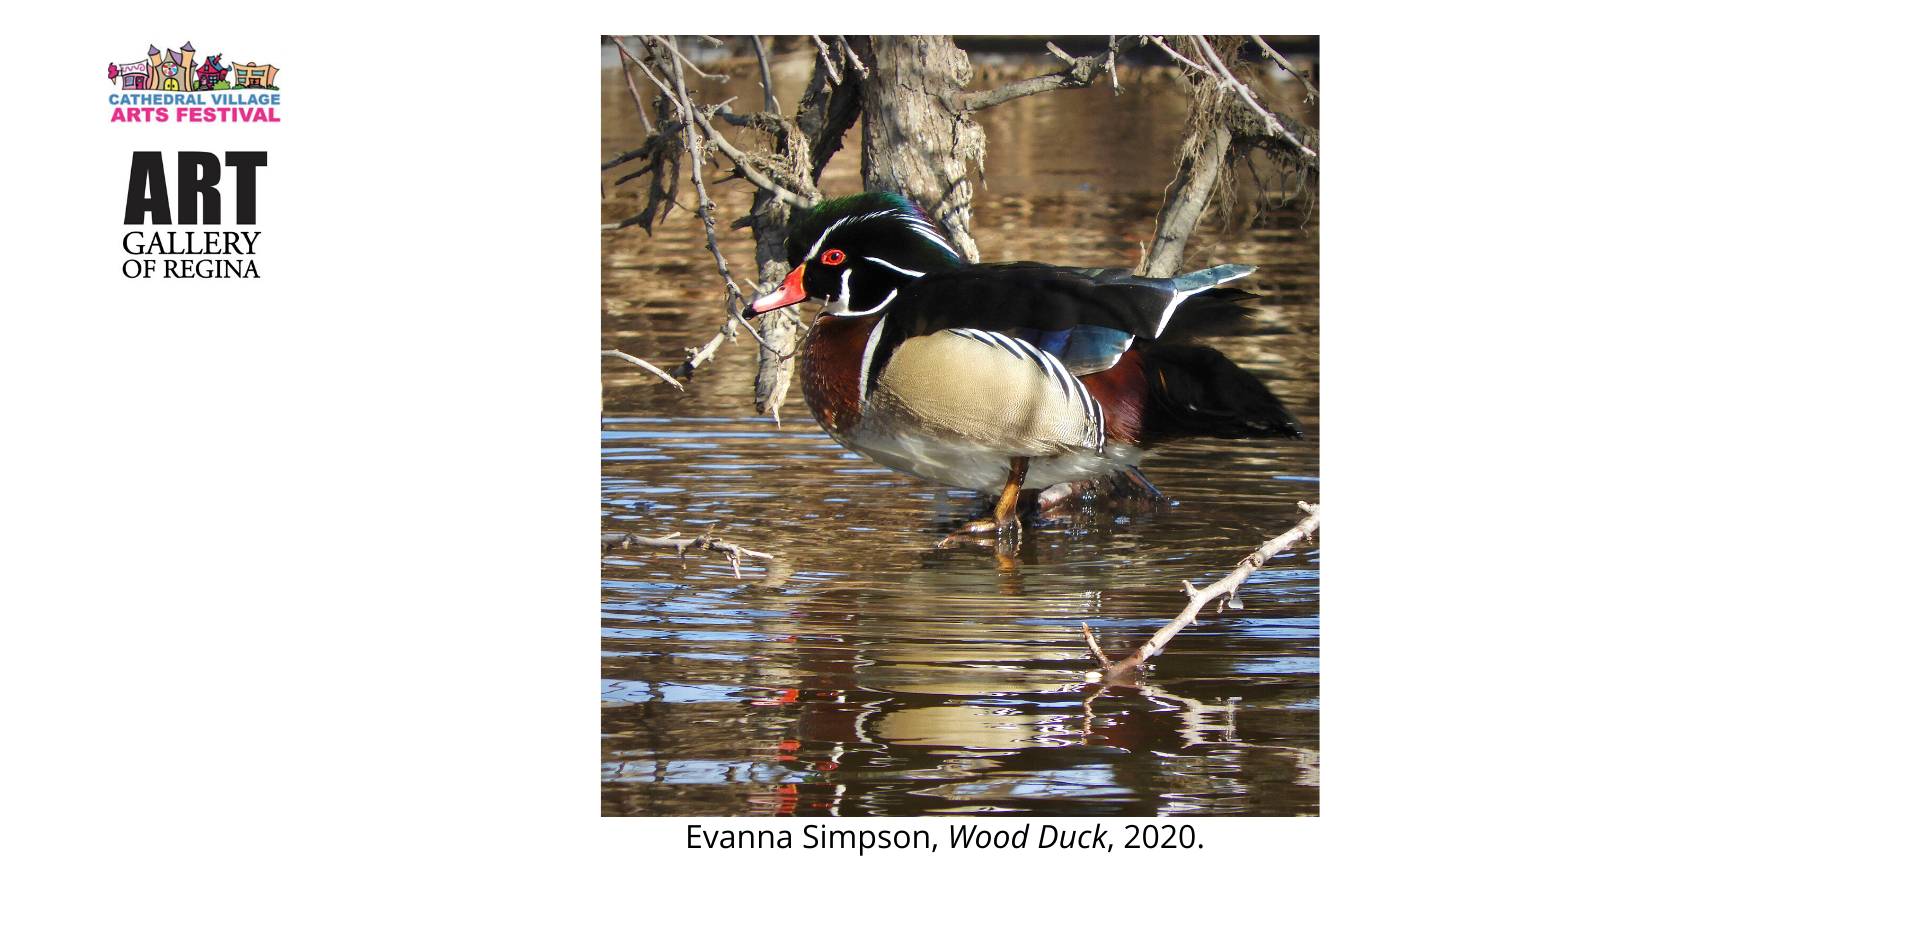 Evanna Simpson, Wood Duck, 2020.